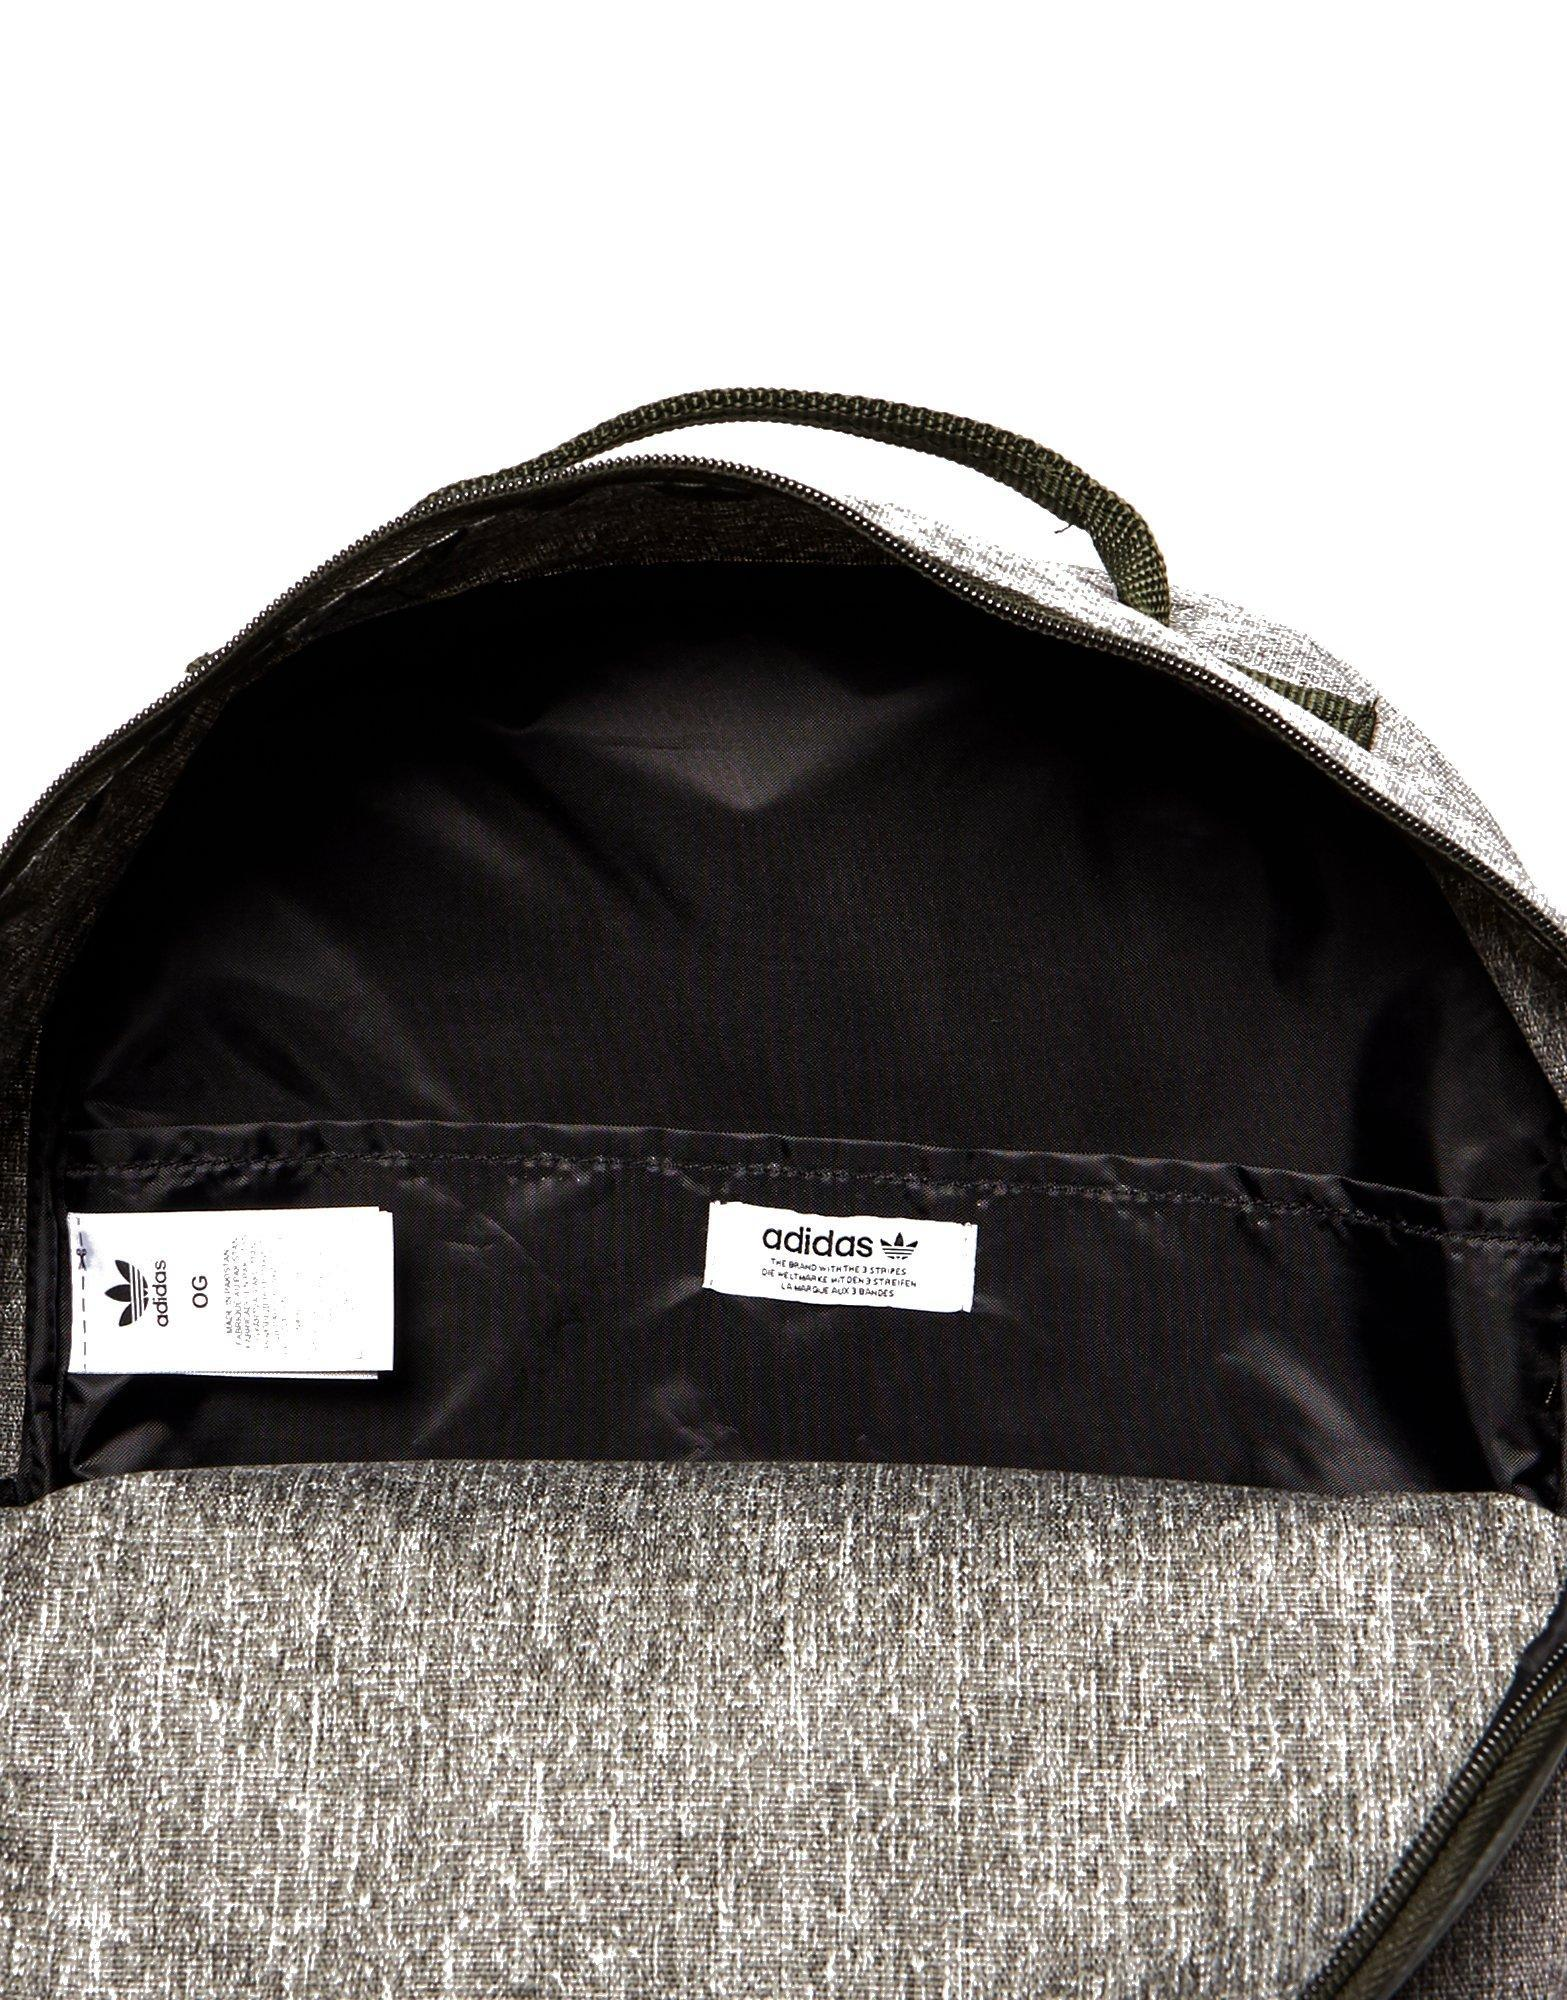 c960a6178606 Lyst - adidas Originals Classic Trefoil Backpack in Gray for Men